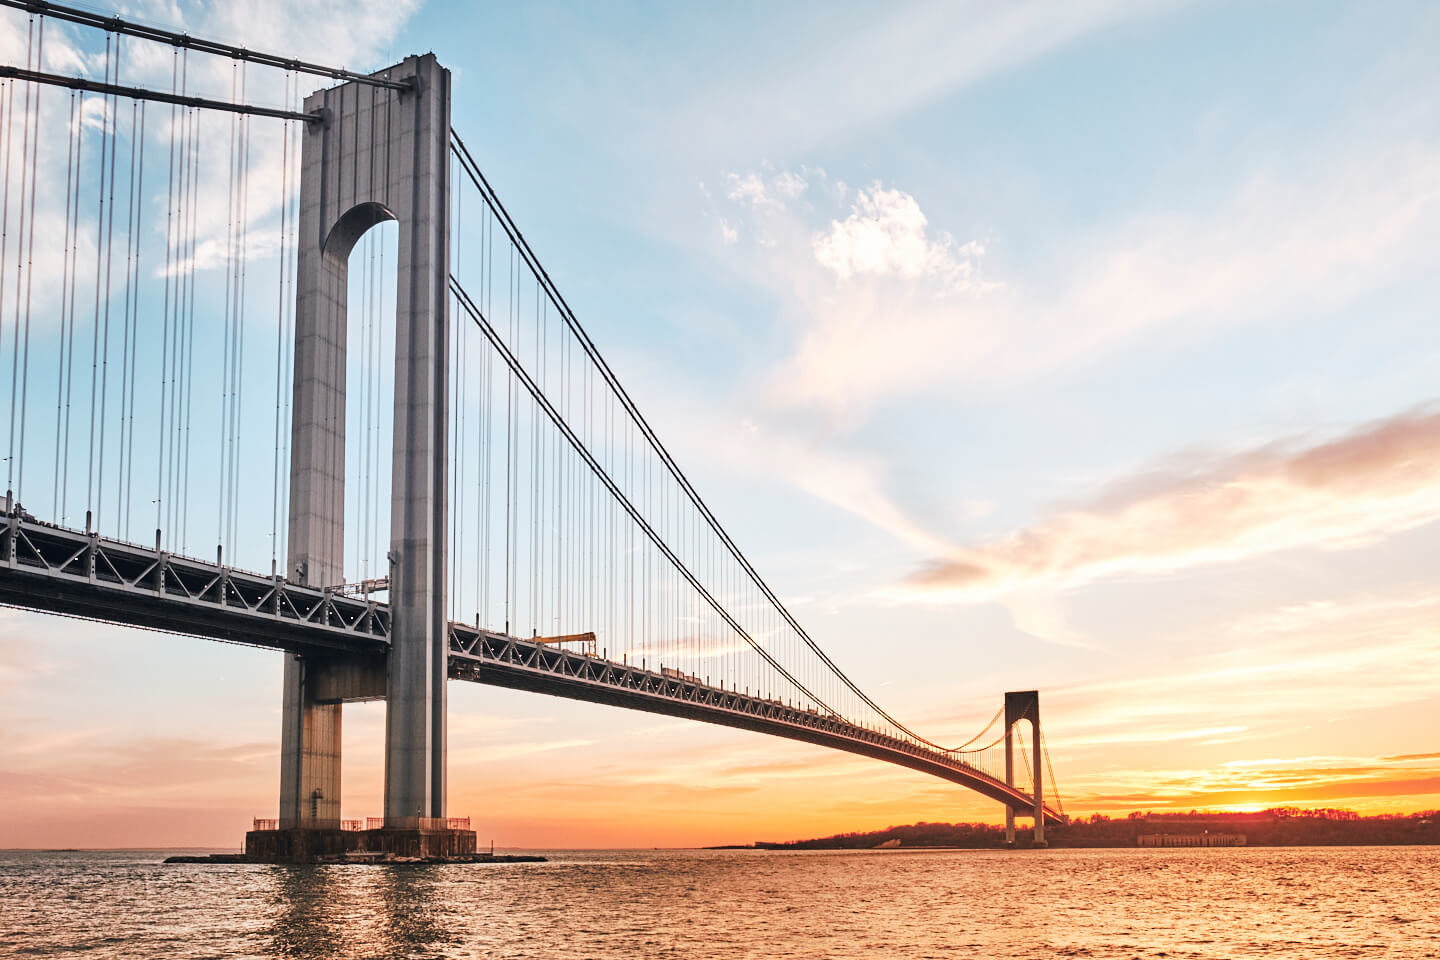 New York Verrazano Bridge Travel Photographer Marcus Lewis web tinypng